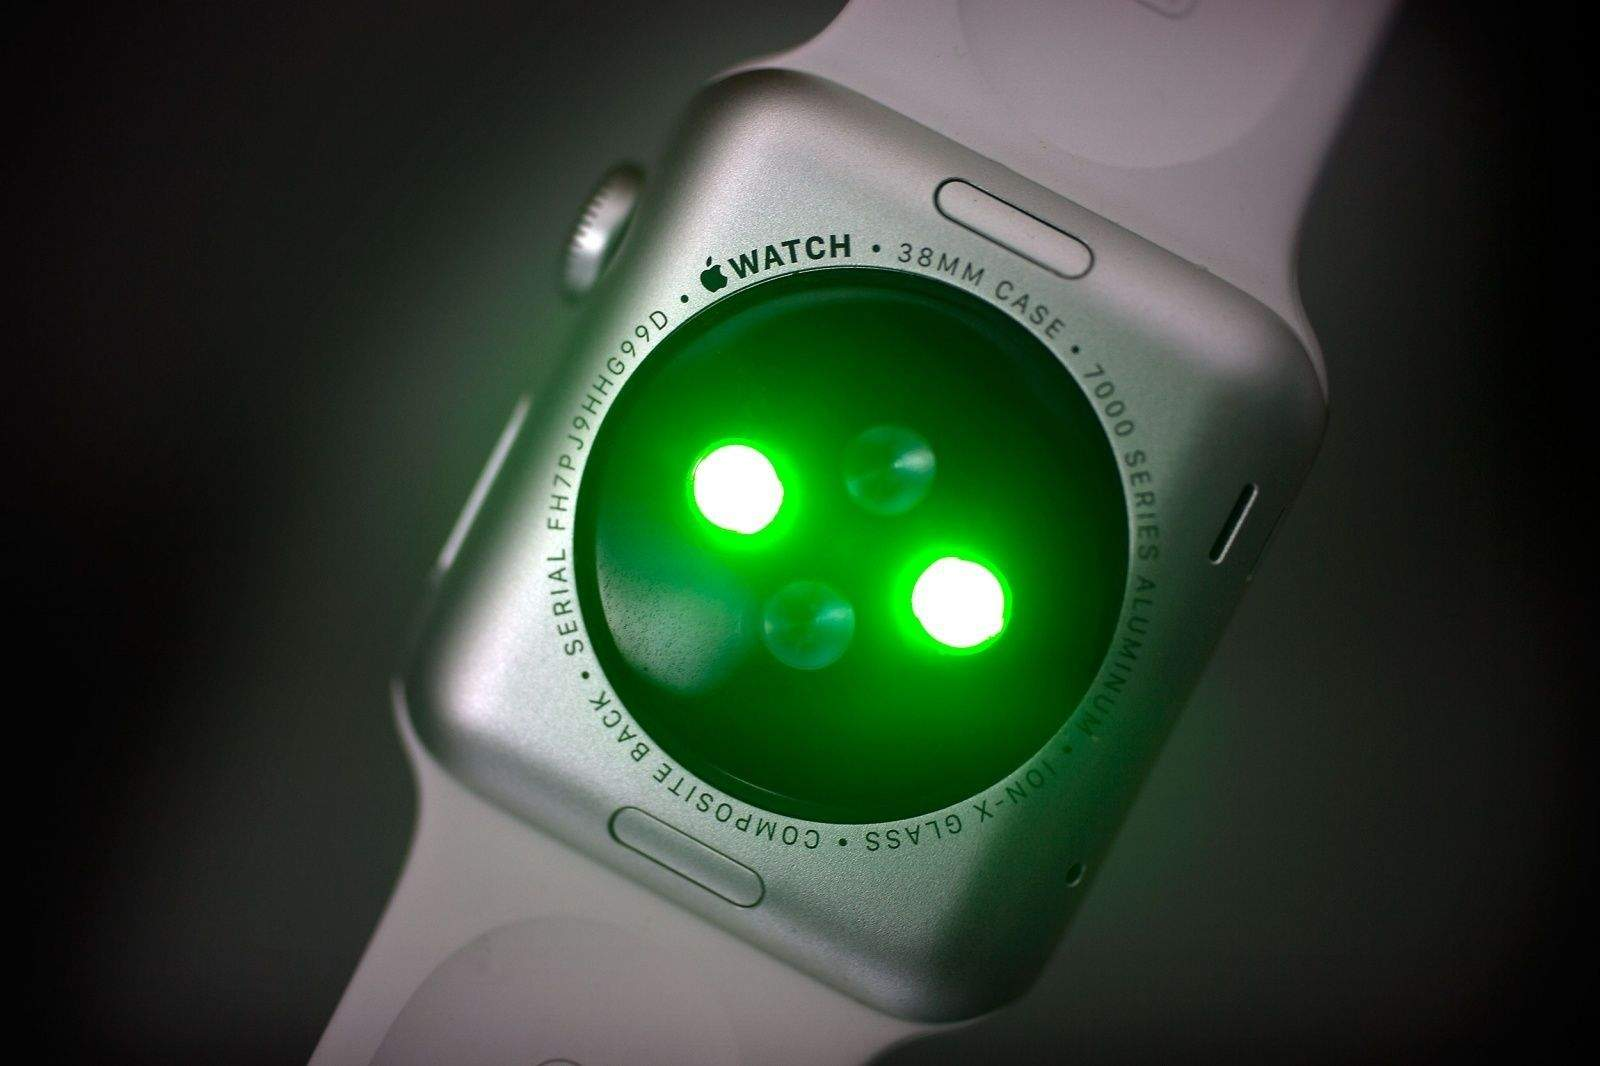 The heart rate sensor has green and infrared LED modes